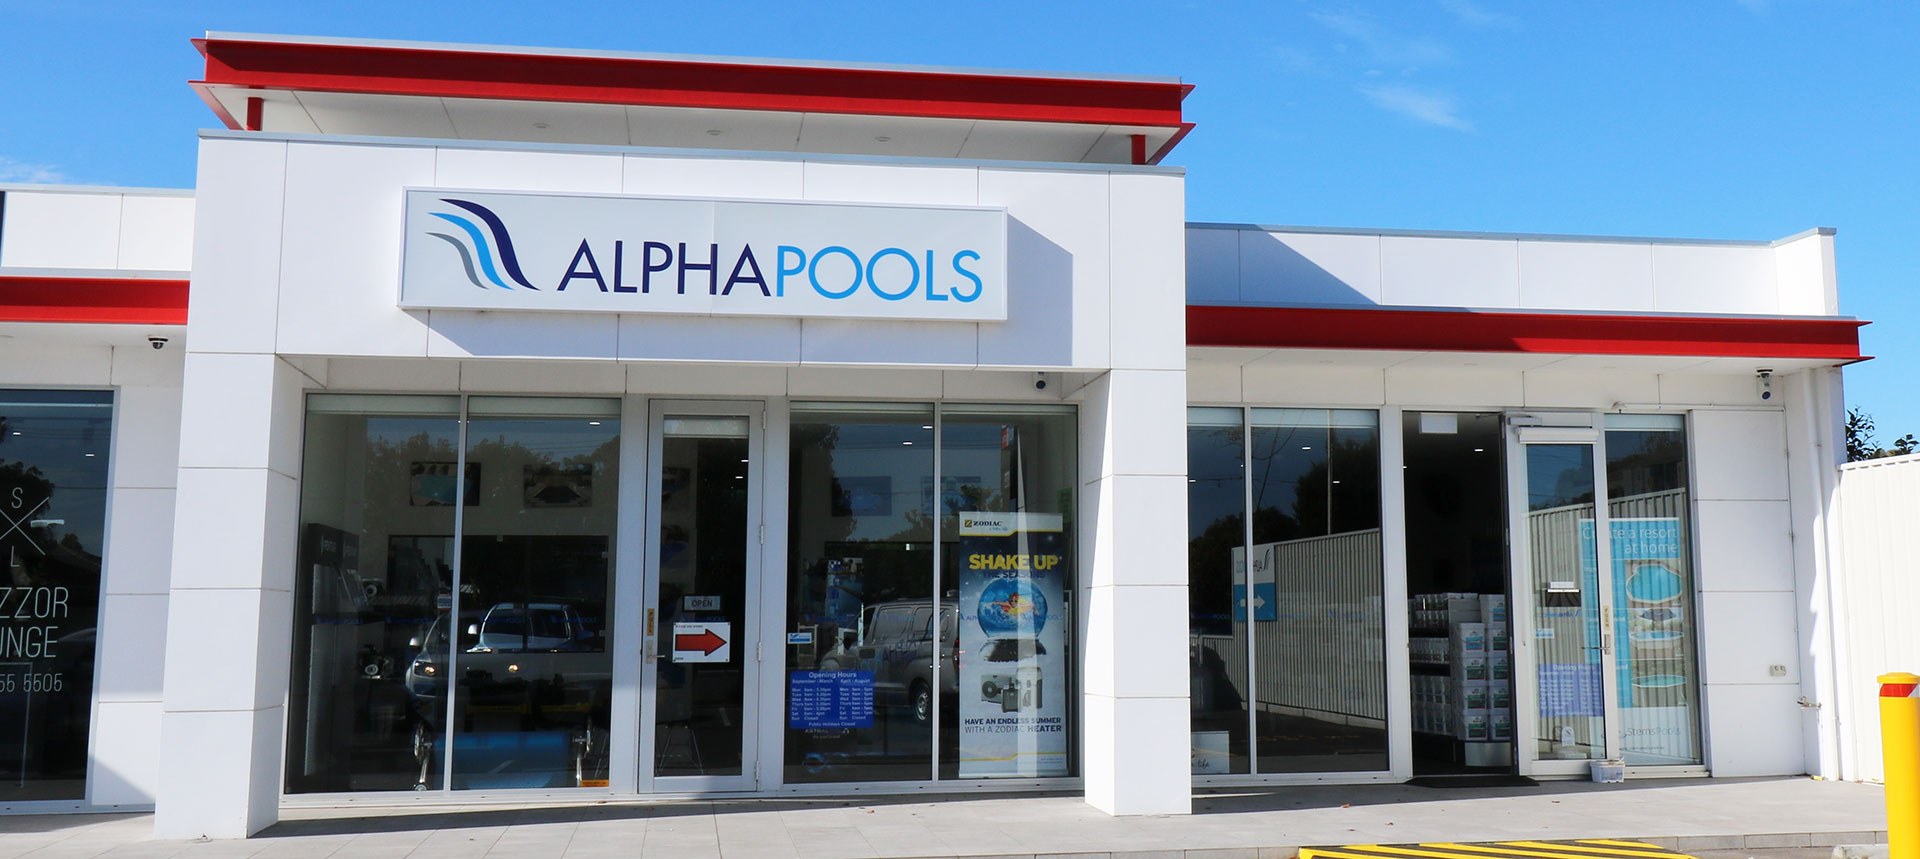 alpha pools shop